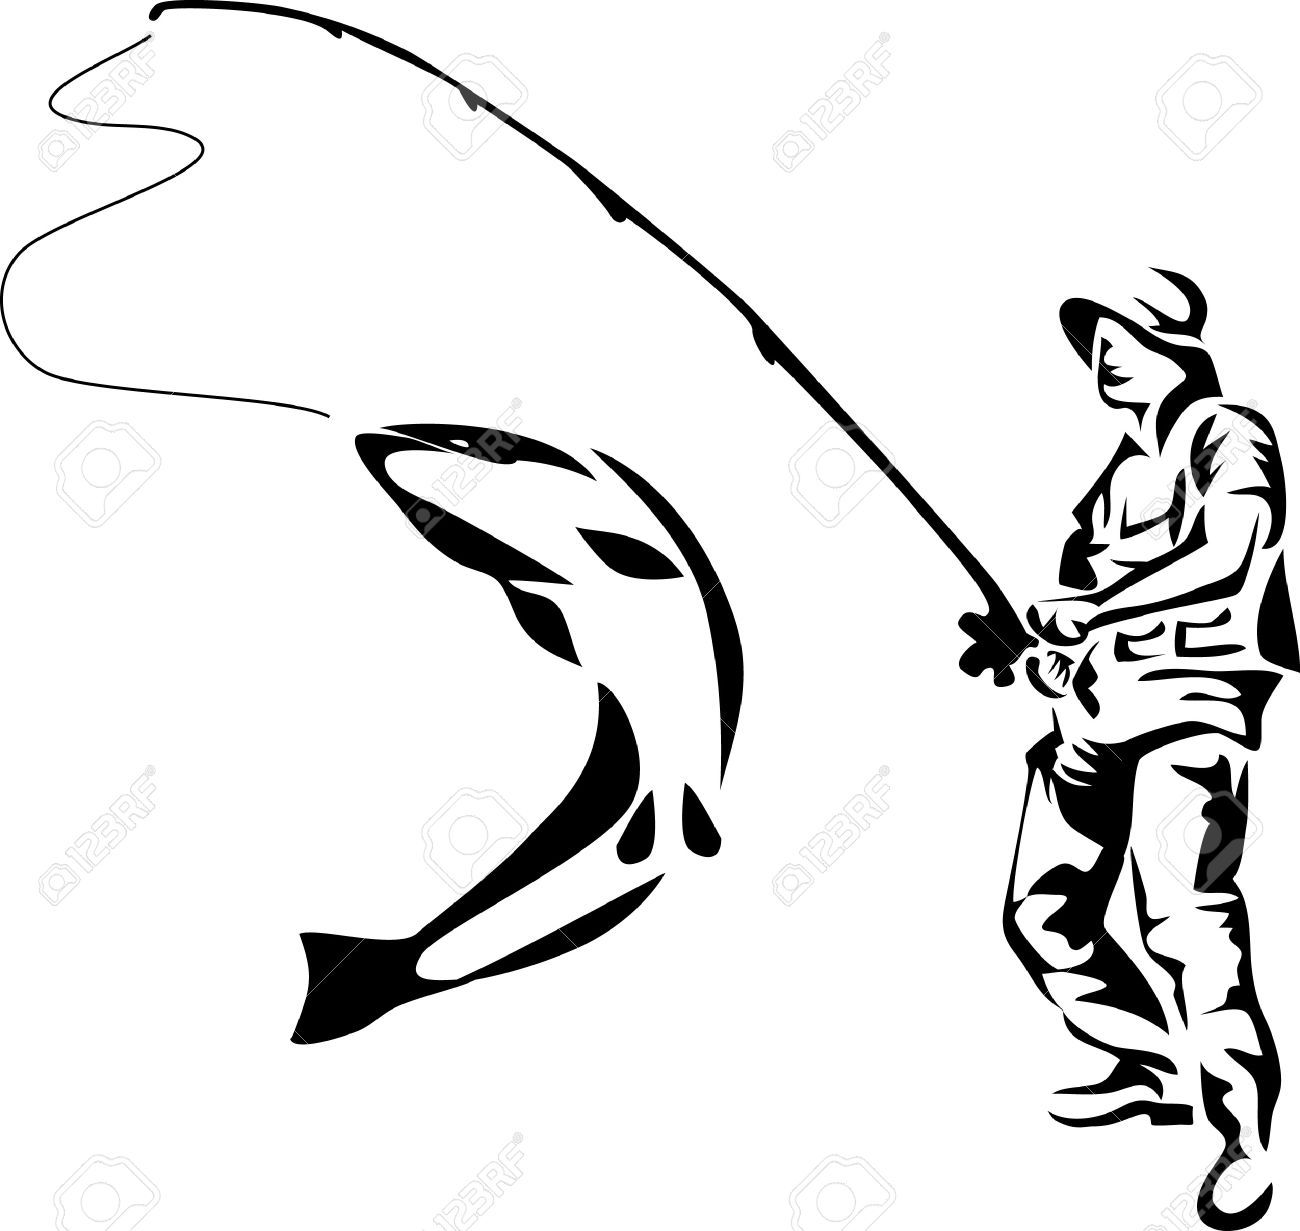 12 421 fisherman cliparts stock vector and royalty free fisherman fish clipart fish silhouette fish fish clipart fish silhouette